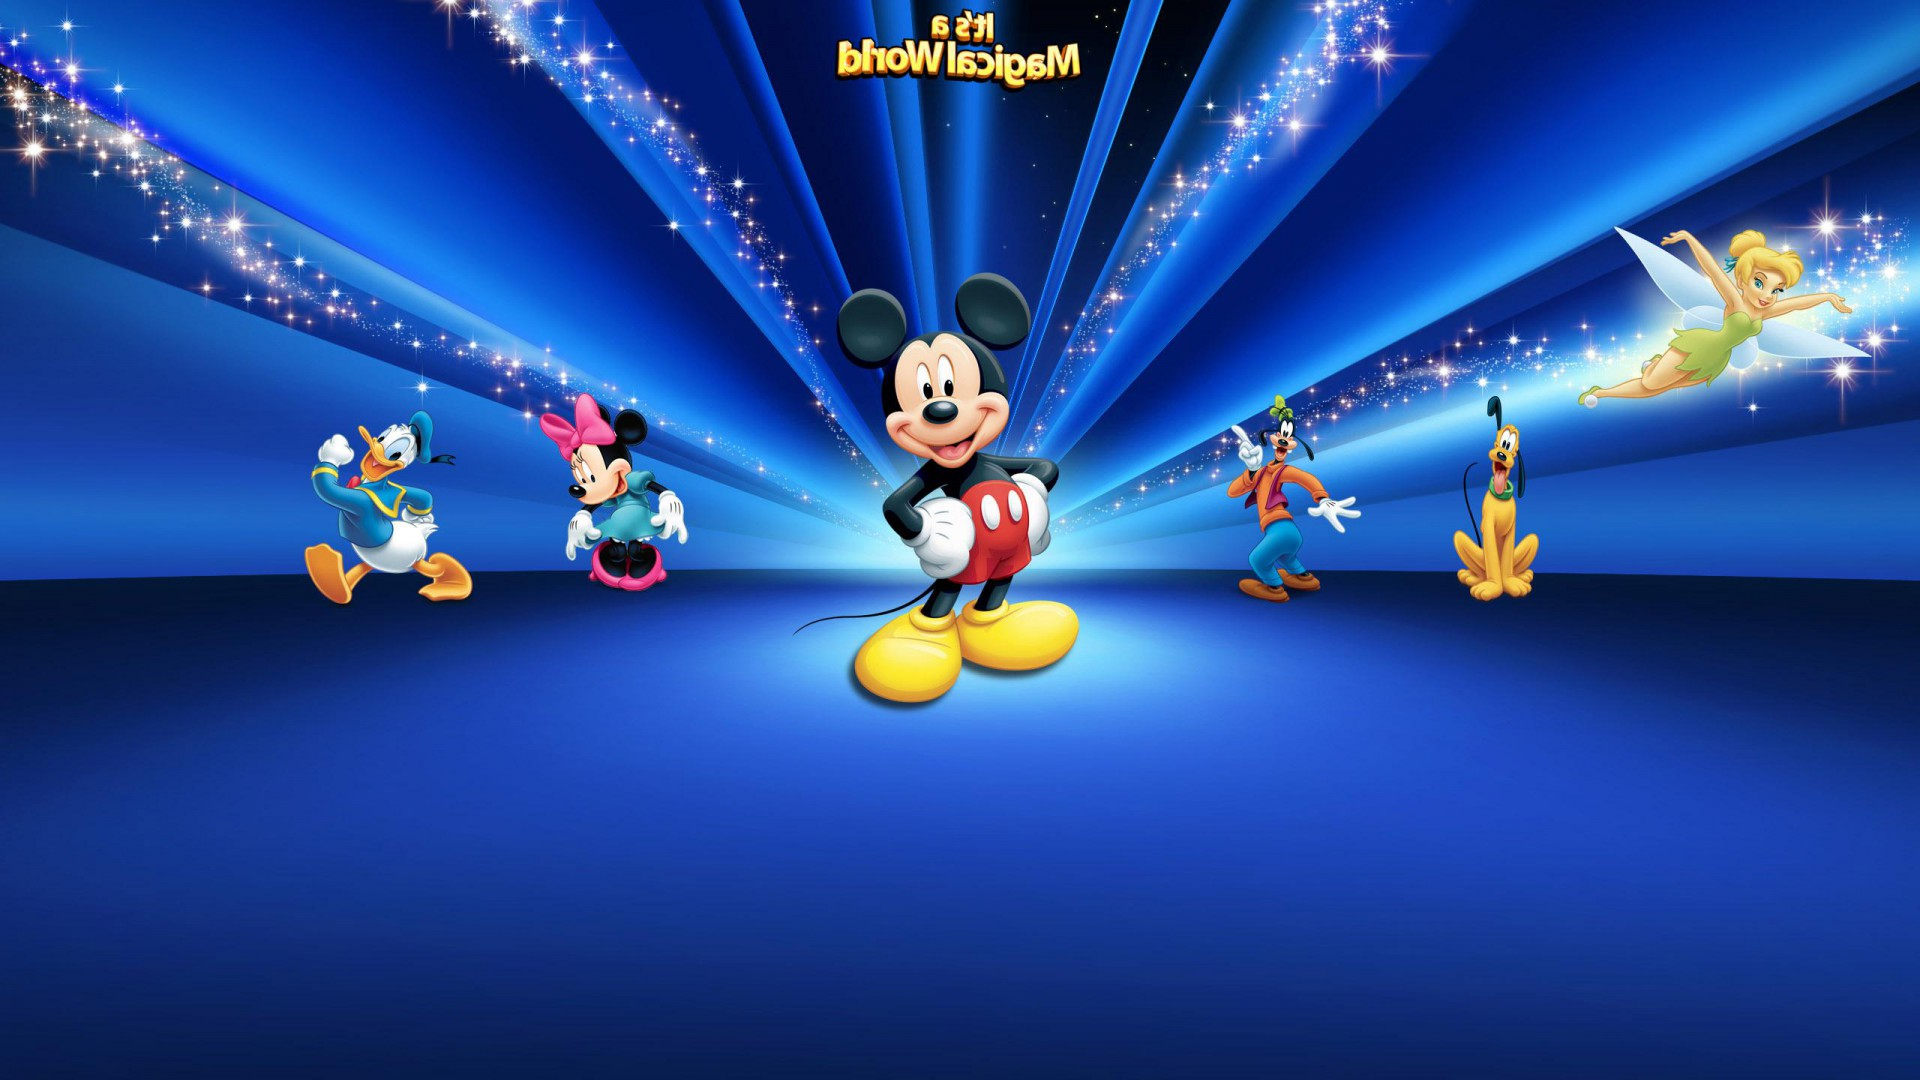 aaccbbfacbffcdde-mickey-mouse-pictures-mickey-mouse-wallpaper-wp3401447